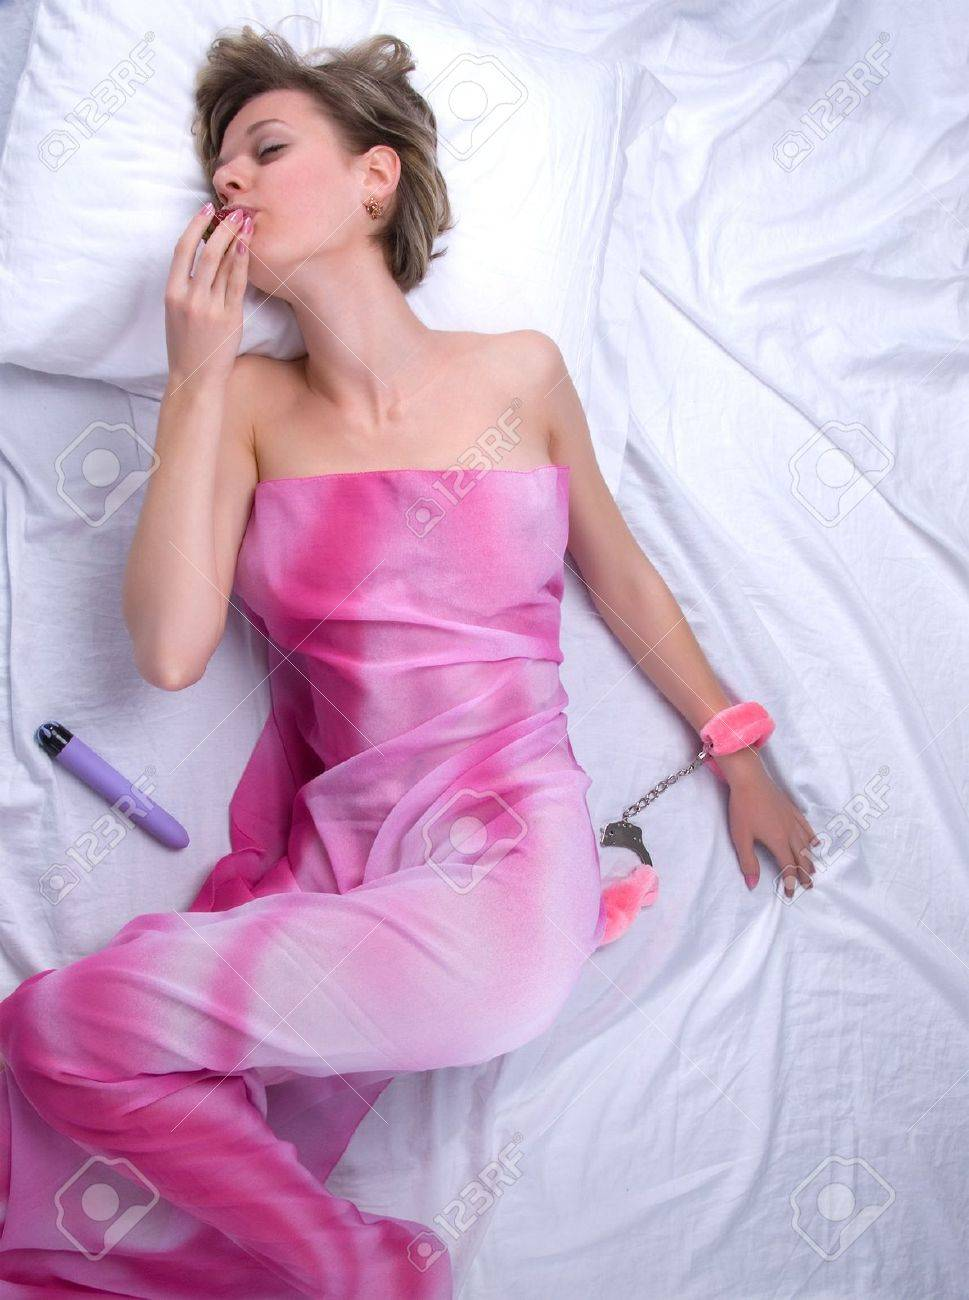 Young woman on bed with strawberry and sex toys Stock Photo - 7508310